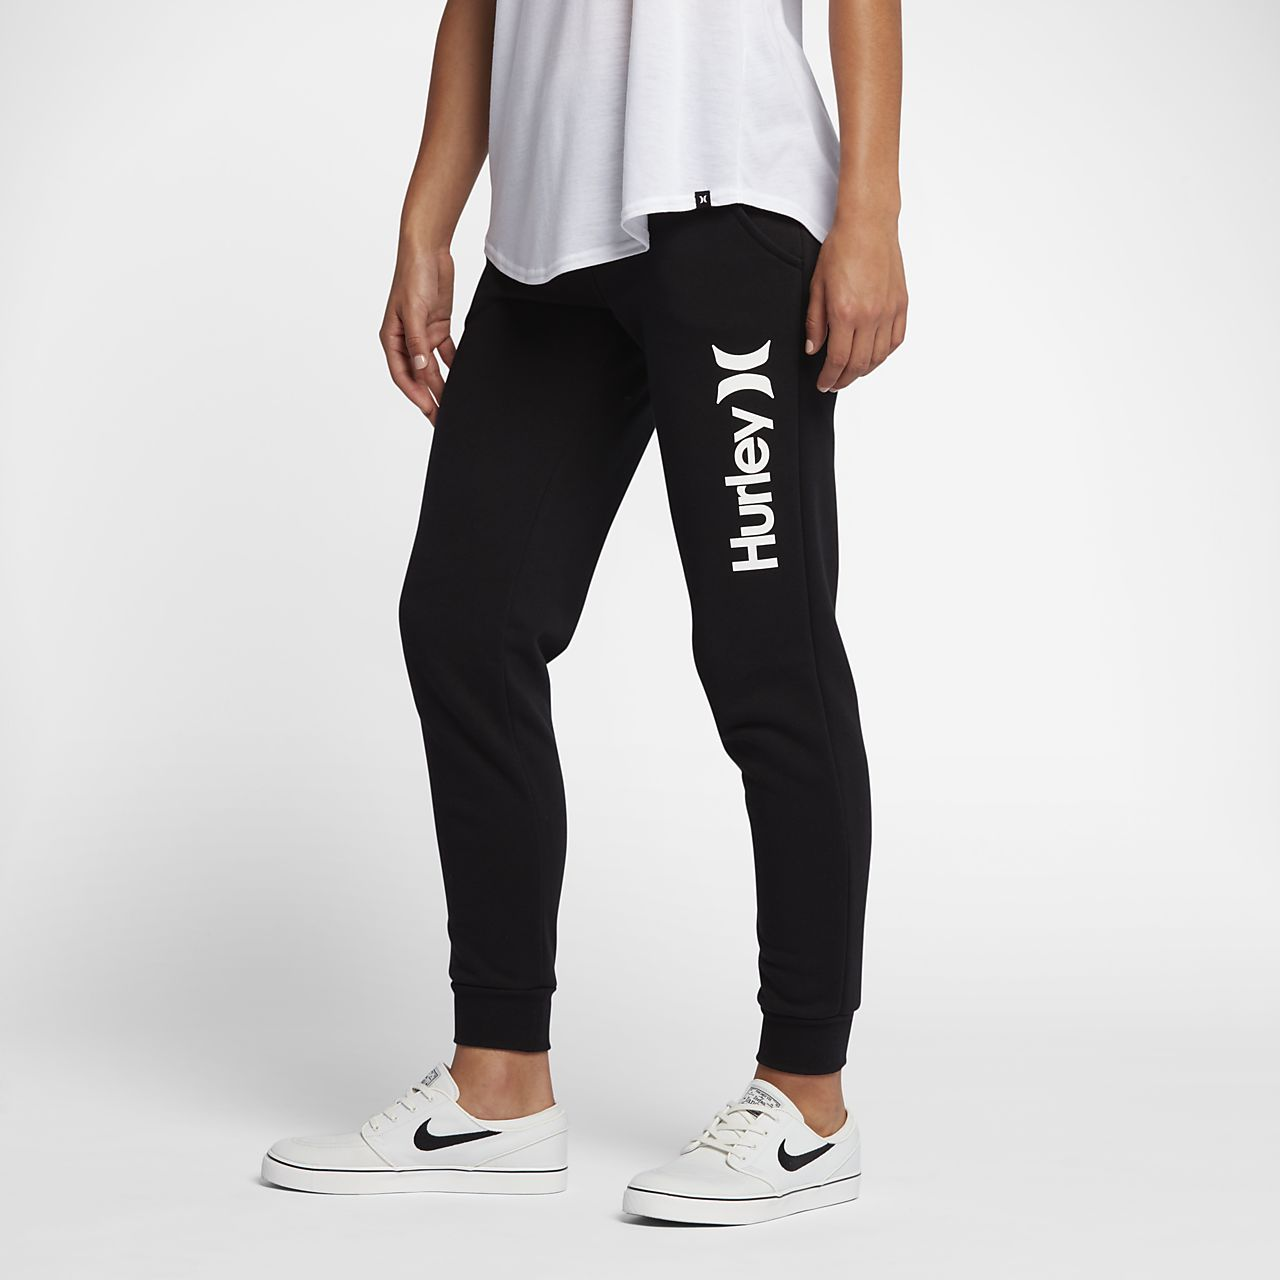 4c6471c9bdbc Hurley One And Only Pop Women s Fleece Track Trousers. Nike.com MA